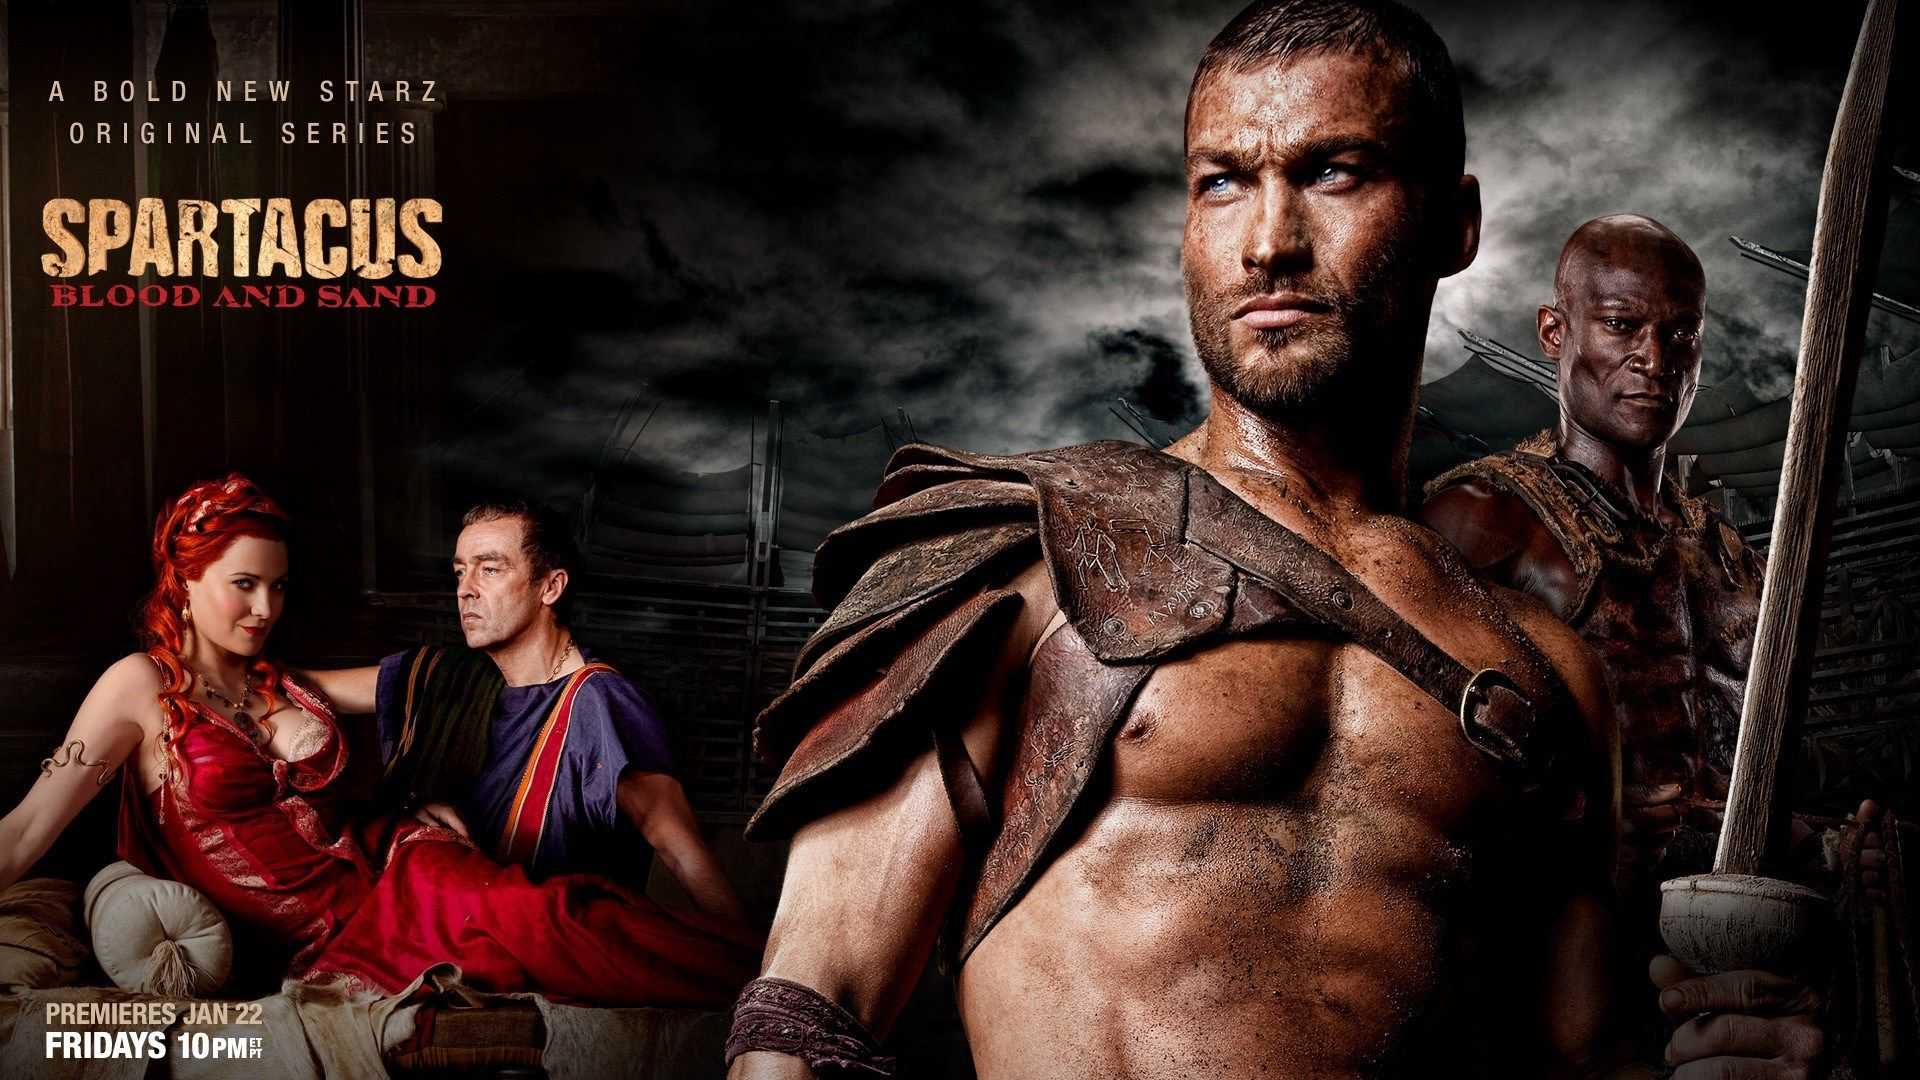 1920x1080 Free Download Pictures Of Spartacus Blood And Sand Spartacus Seasons Spartacus 3 Spartacus